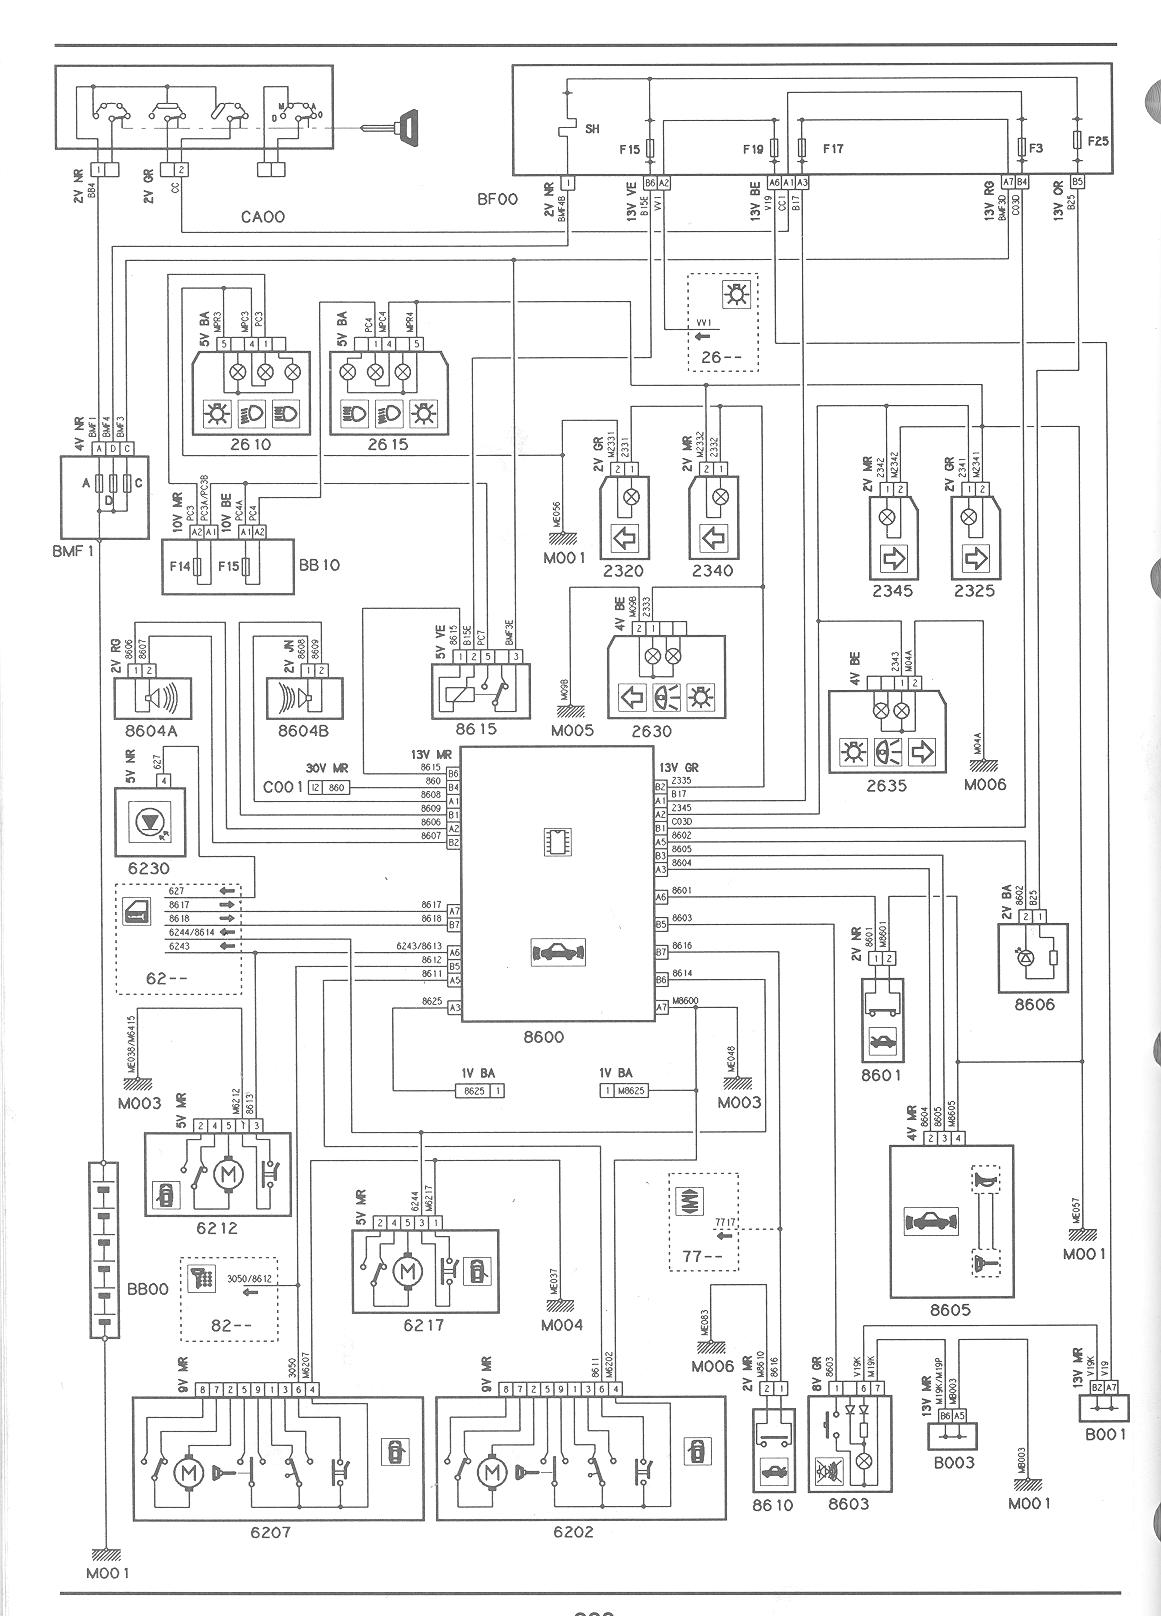 [WRG-2570] Citroen Xsara Picasso Ignition Wiring Diagram